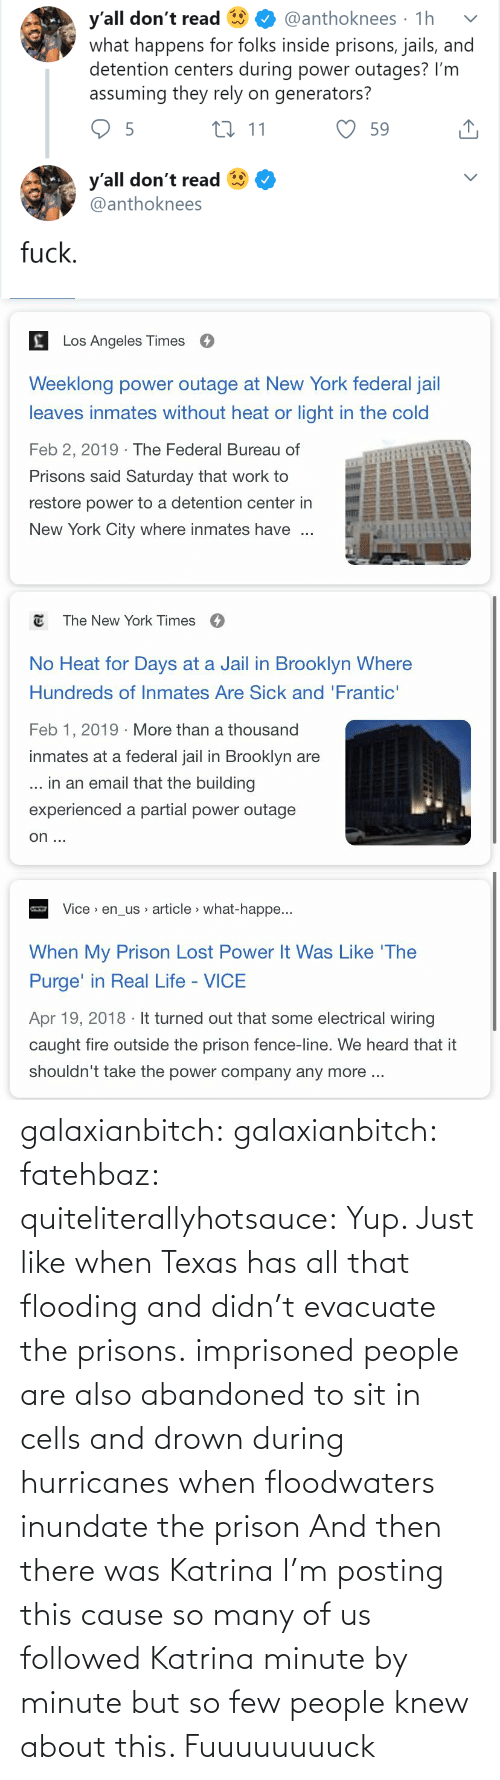 york: y'all don't read  what happens for folks inside prisons, jails, and  detention centers during power outages? I'm  assuming they rely on generators?  @anthoknees · 1h  27 11  59  y'all don't read  @anthoknees  fuck.   Los Angeles Times  Weeklong power outage at New York federal jail  leaves inmates without heat or light in the cold  Feb 2, 2019 · The Federal Bureau of  Prisons said Saturday that work to  restore power to a detention center in  New York City where inmates have   E The New York Times  O  No Heat for Days at a Jail in Brooklyn Where  Hundreds of Inmates Are Sick and 'Frantic'  Feb 1, 2019 · More than a thousand  inmates at a federal jail in Brooklyn are  ... in an email that the building  experienced a partial power outage  on ...   Vice > en_us article > what-happe...  When My Prison Lost Power It Was Like 'The  Purge' in Real Life - VICE  Apr 19, 2018 · It turned out that some electrical wiring  caught fire outside the prison fence-line. We heard that it  shouldn't take the power company any more .. galaxianbitch: galaxianbitch:   fatehbaz:  quiteliterallyhotsauce:   Yup. Just like when Texas has all that flooding and didn't evacuate the prisons.   imprisoned people are also abandoned to sit in cells and drown during hurricanes when floodwaters inundate the prison   And then there was Katrina        I'm posting this cause so many of us followed Katrina minute by minute but so few people knew about this.    Fuuuuuuuuck